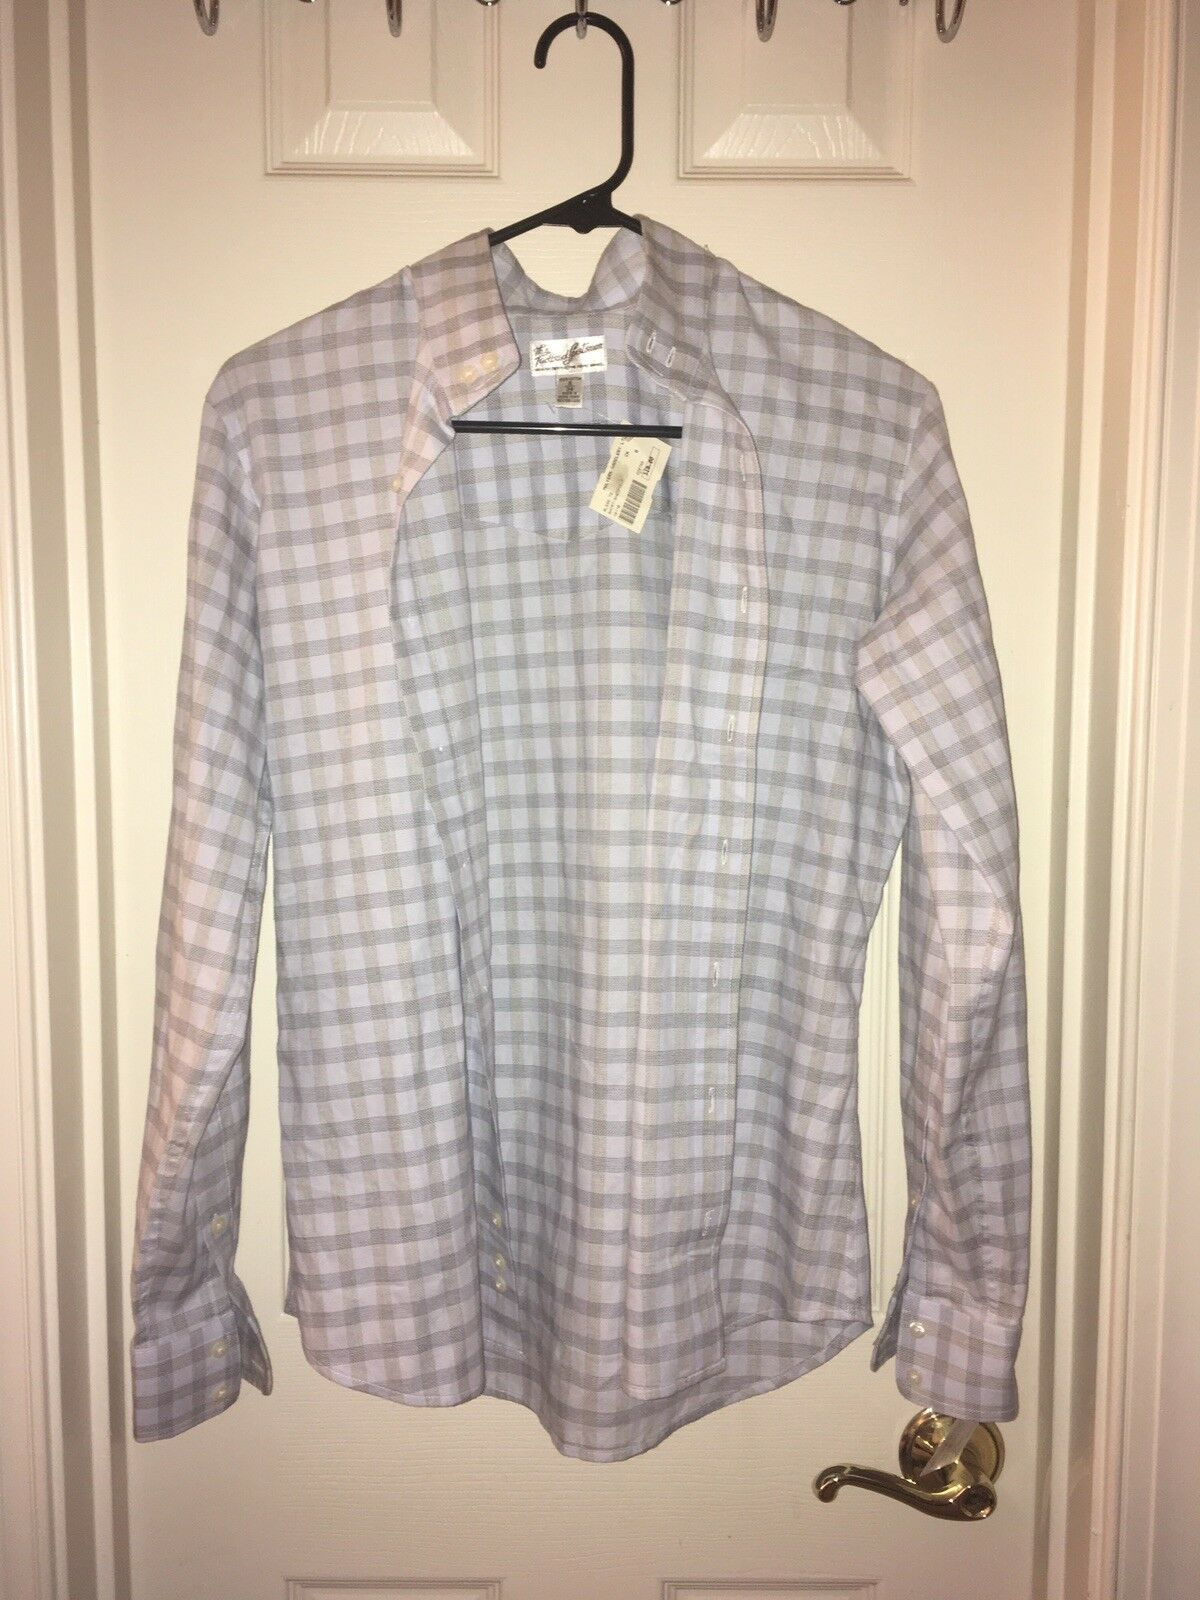 Tailored Sportsman 34 6 Ladies Women Show Shirt bluee Nwt   110 Taupe Hunt Horse  best offer